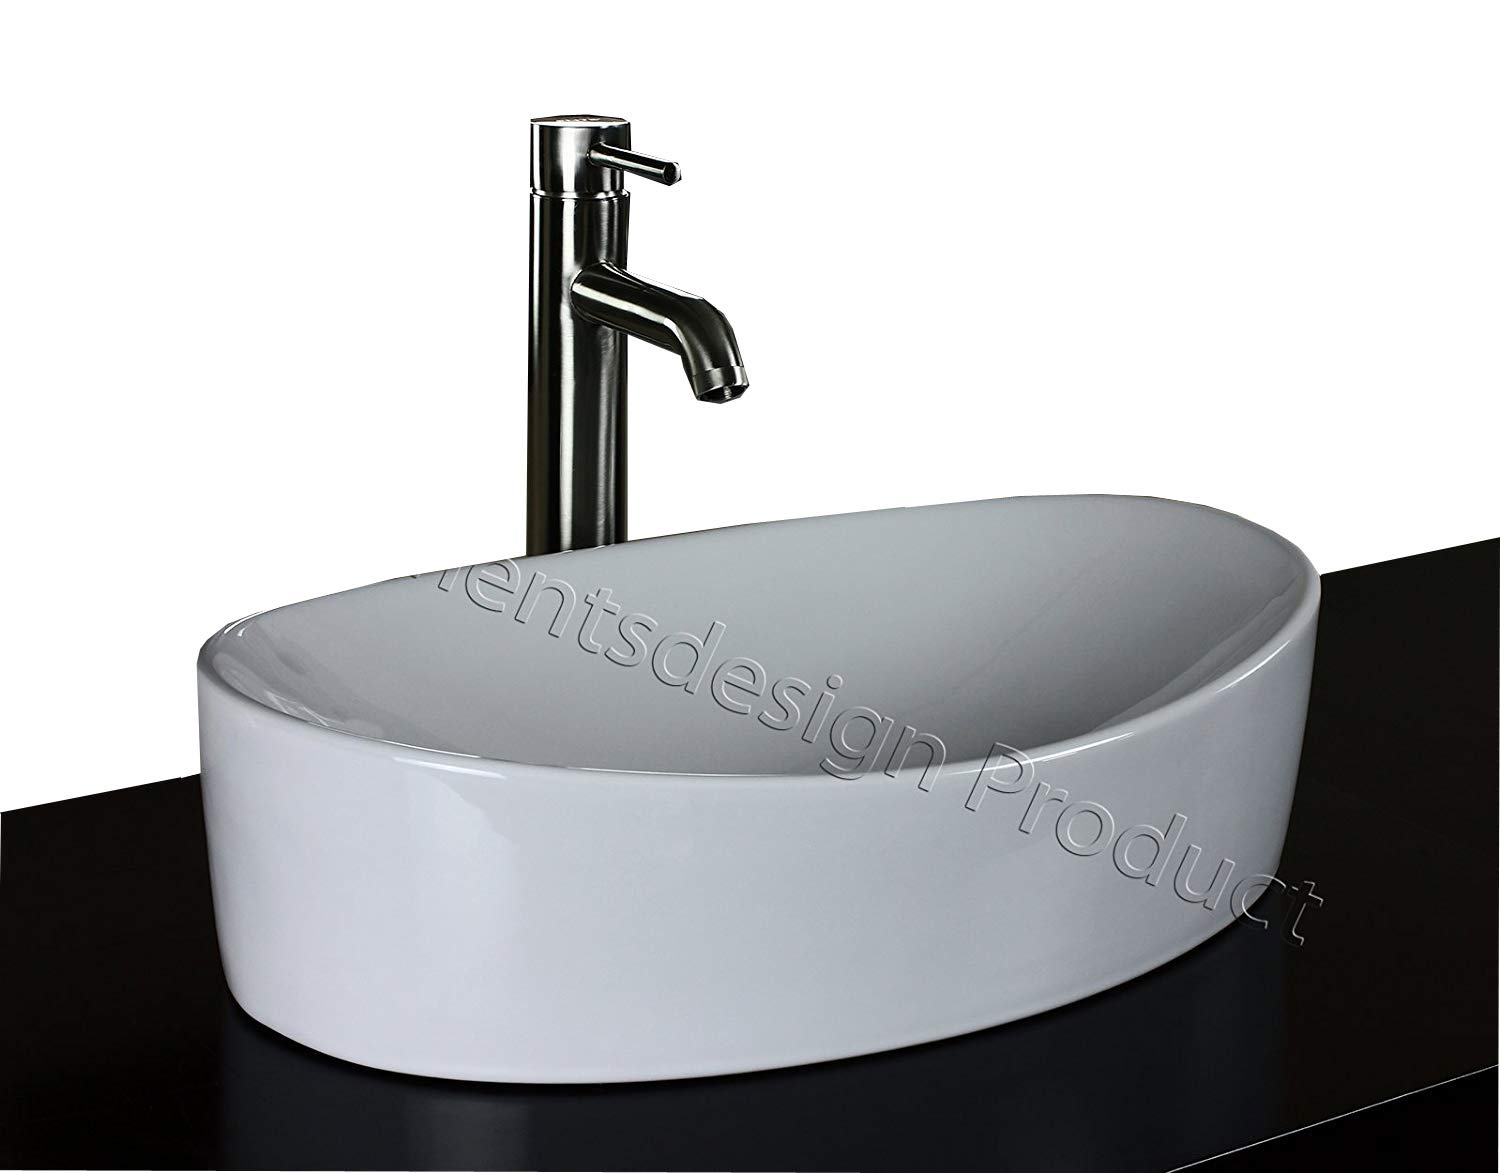 ELIMAX S Bathroom Ceramic Vessel Sink 7756CL3 With Brushed Nickel Faucet Drain